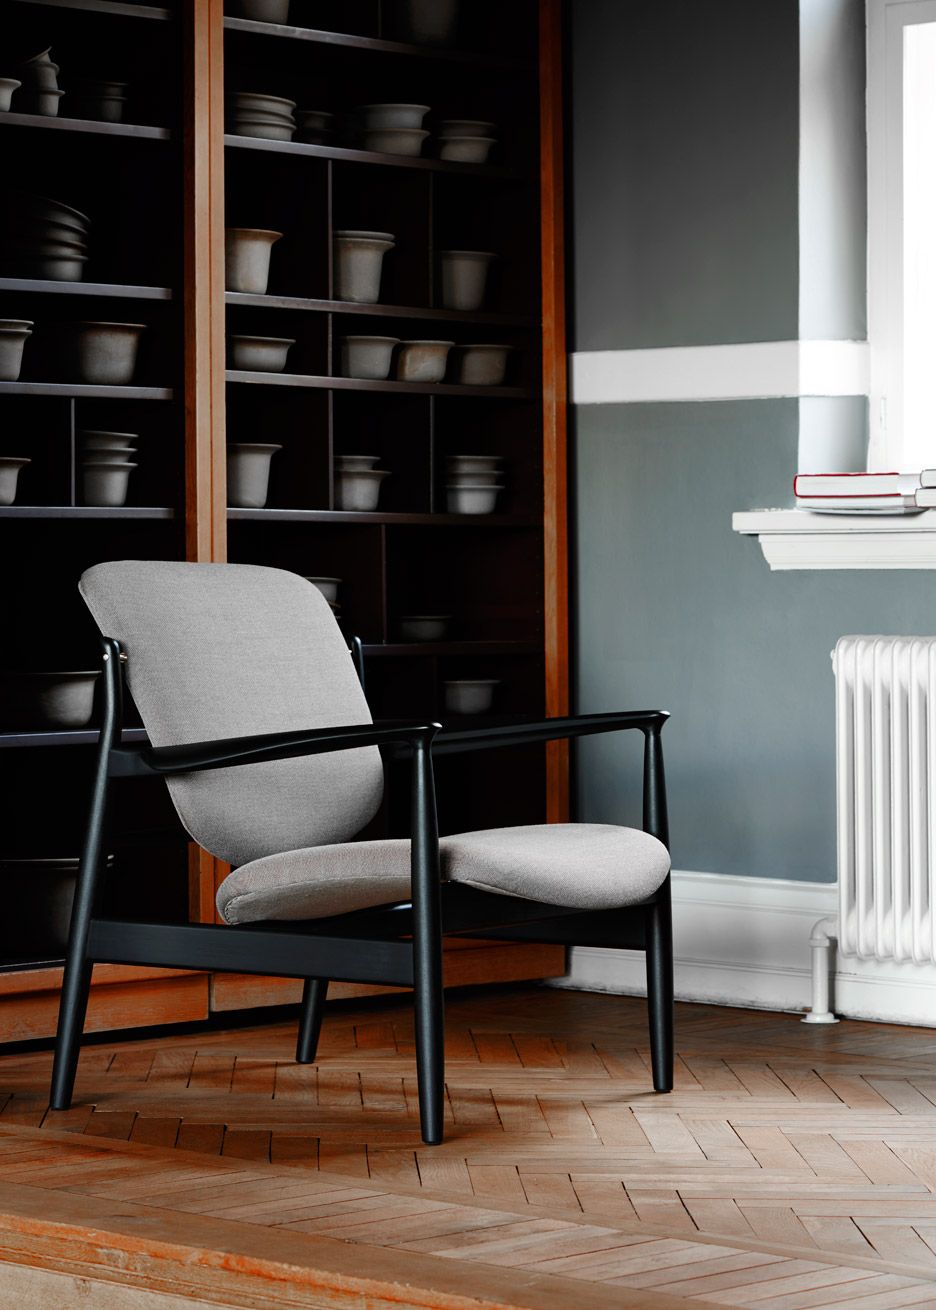 Furniture manufacturer Onecollection has relaunched a 1958 chair by Finn Juhl, which played an important role in the proliferation of Danish design